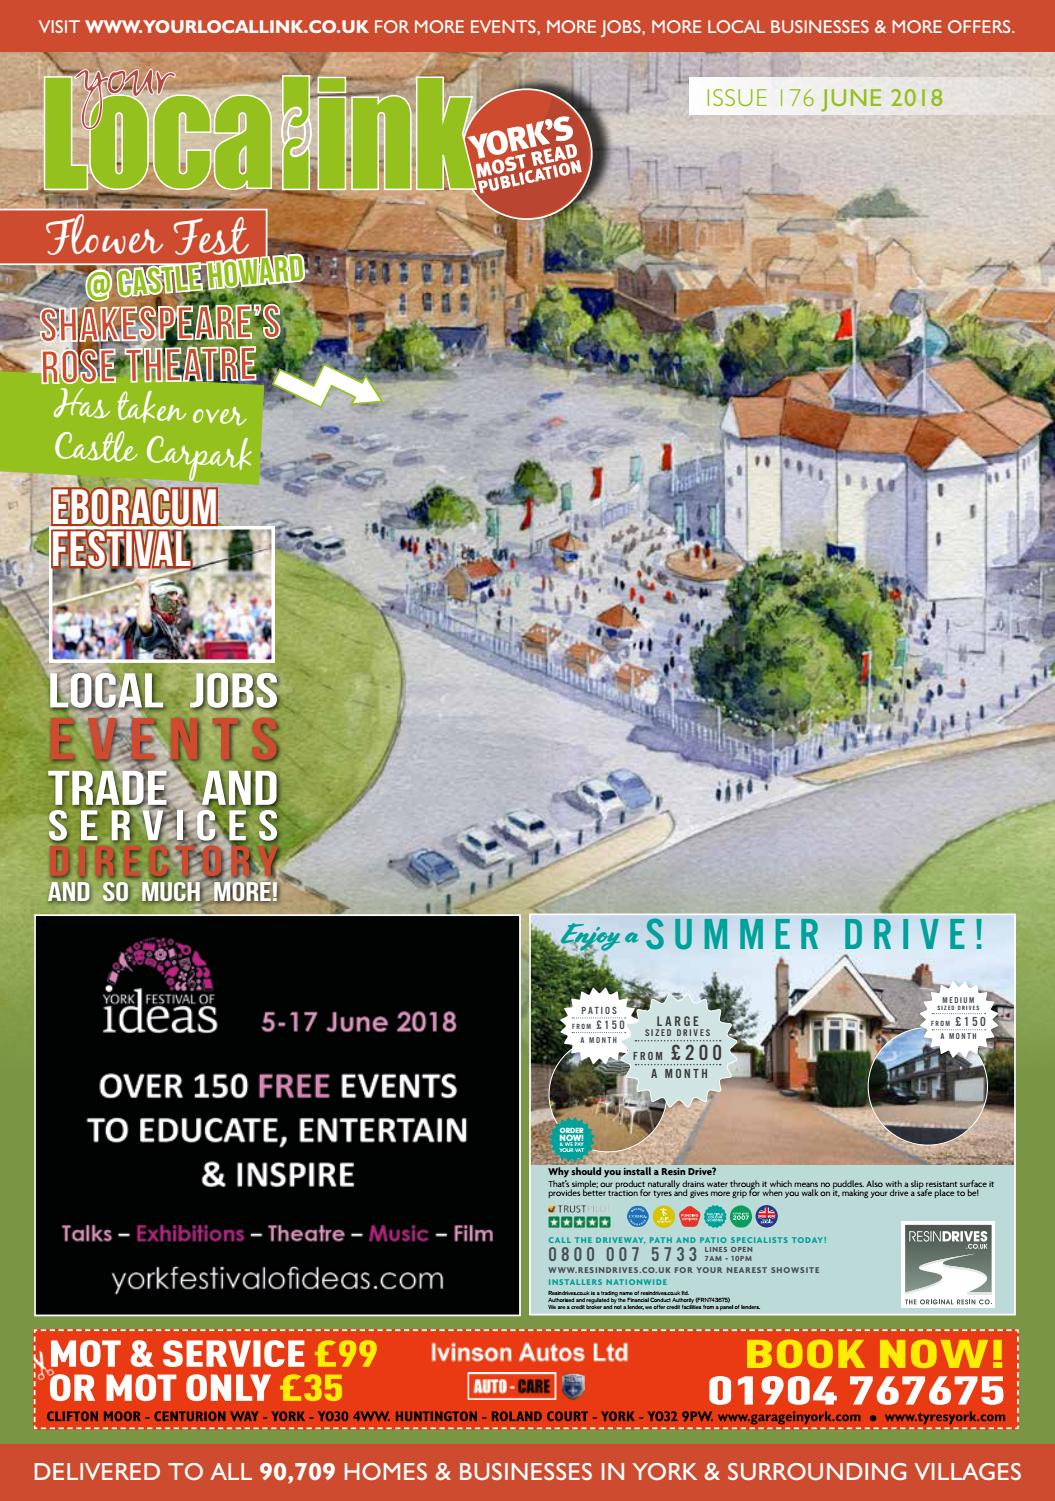 17a4faf433fd2 Your Local Link June 2018 by Your Local Link Ltd - issuu